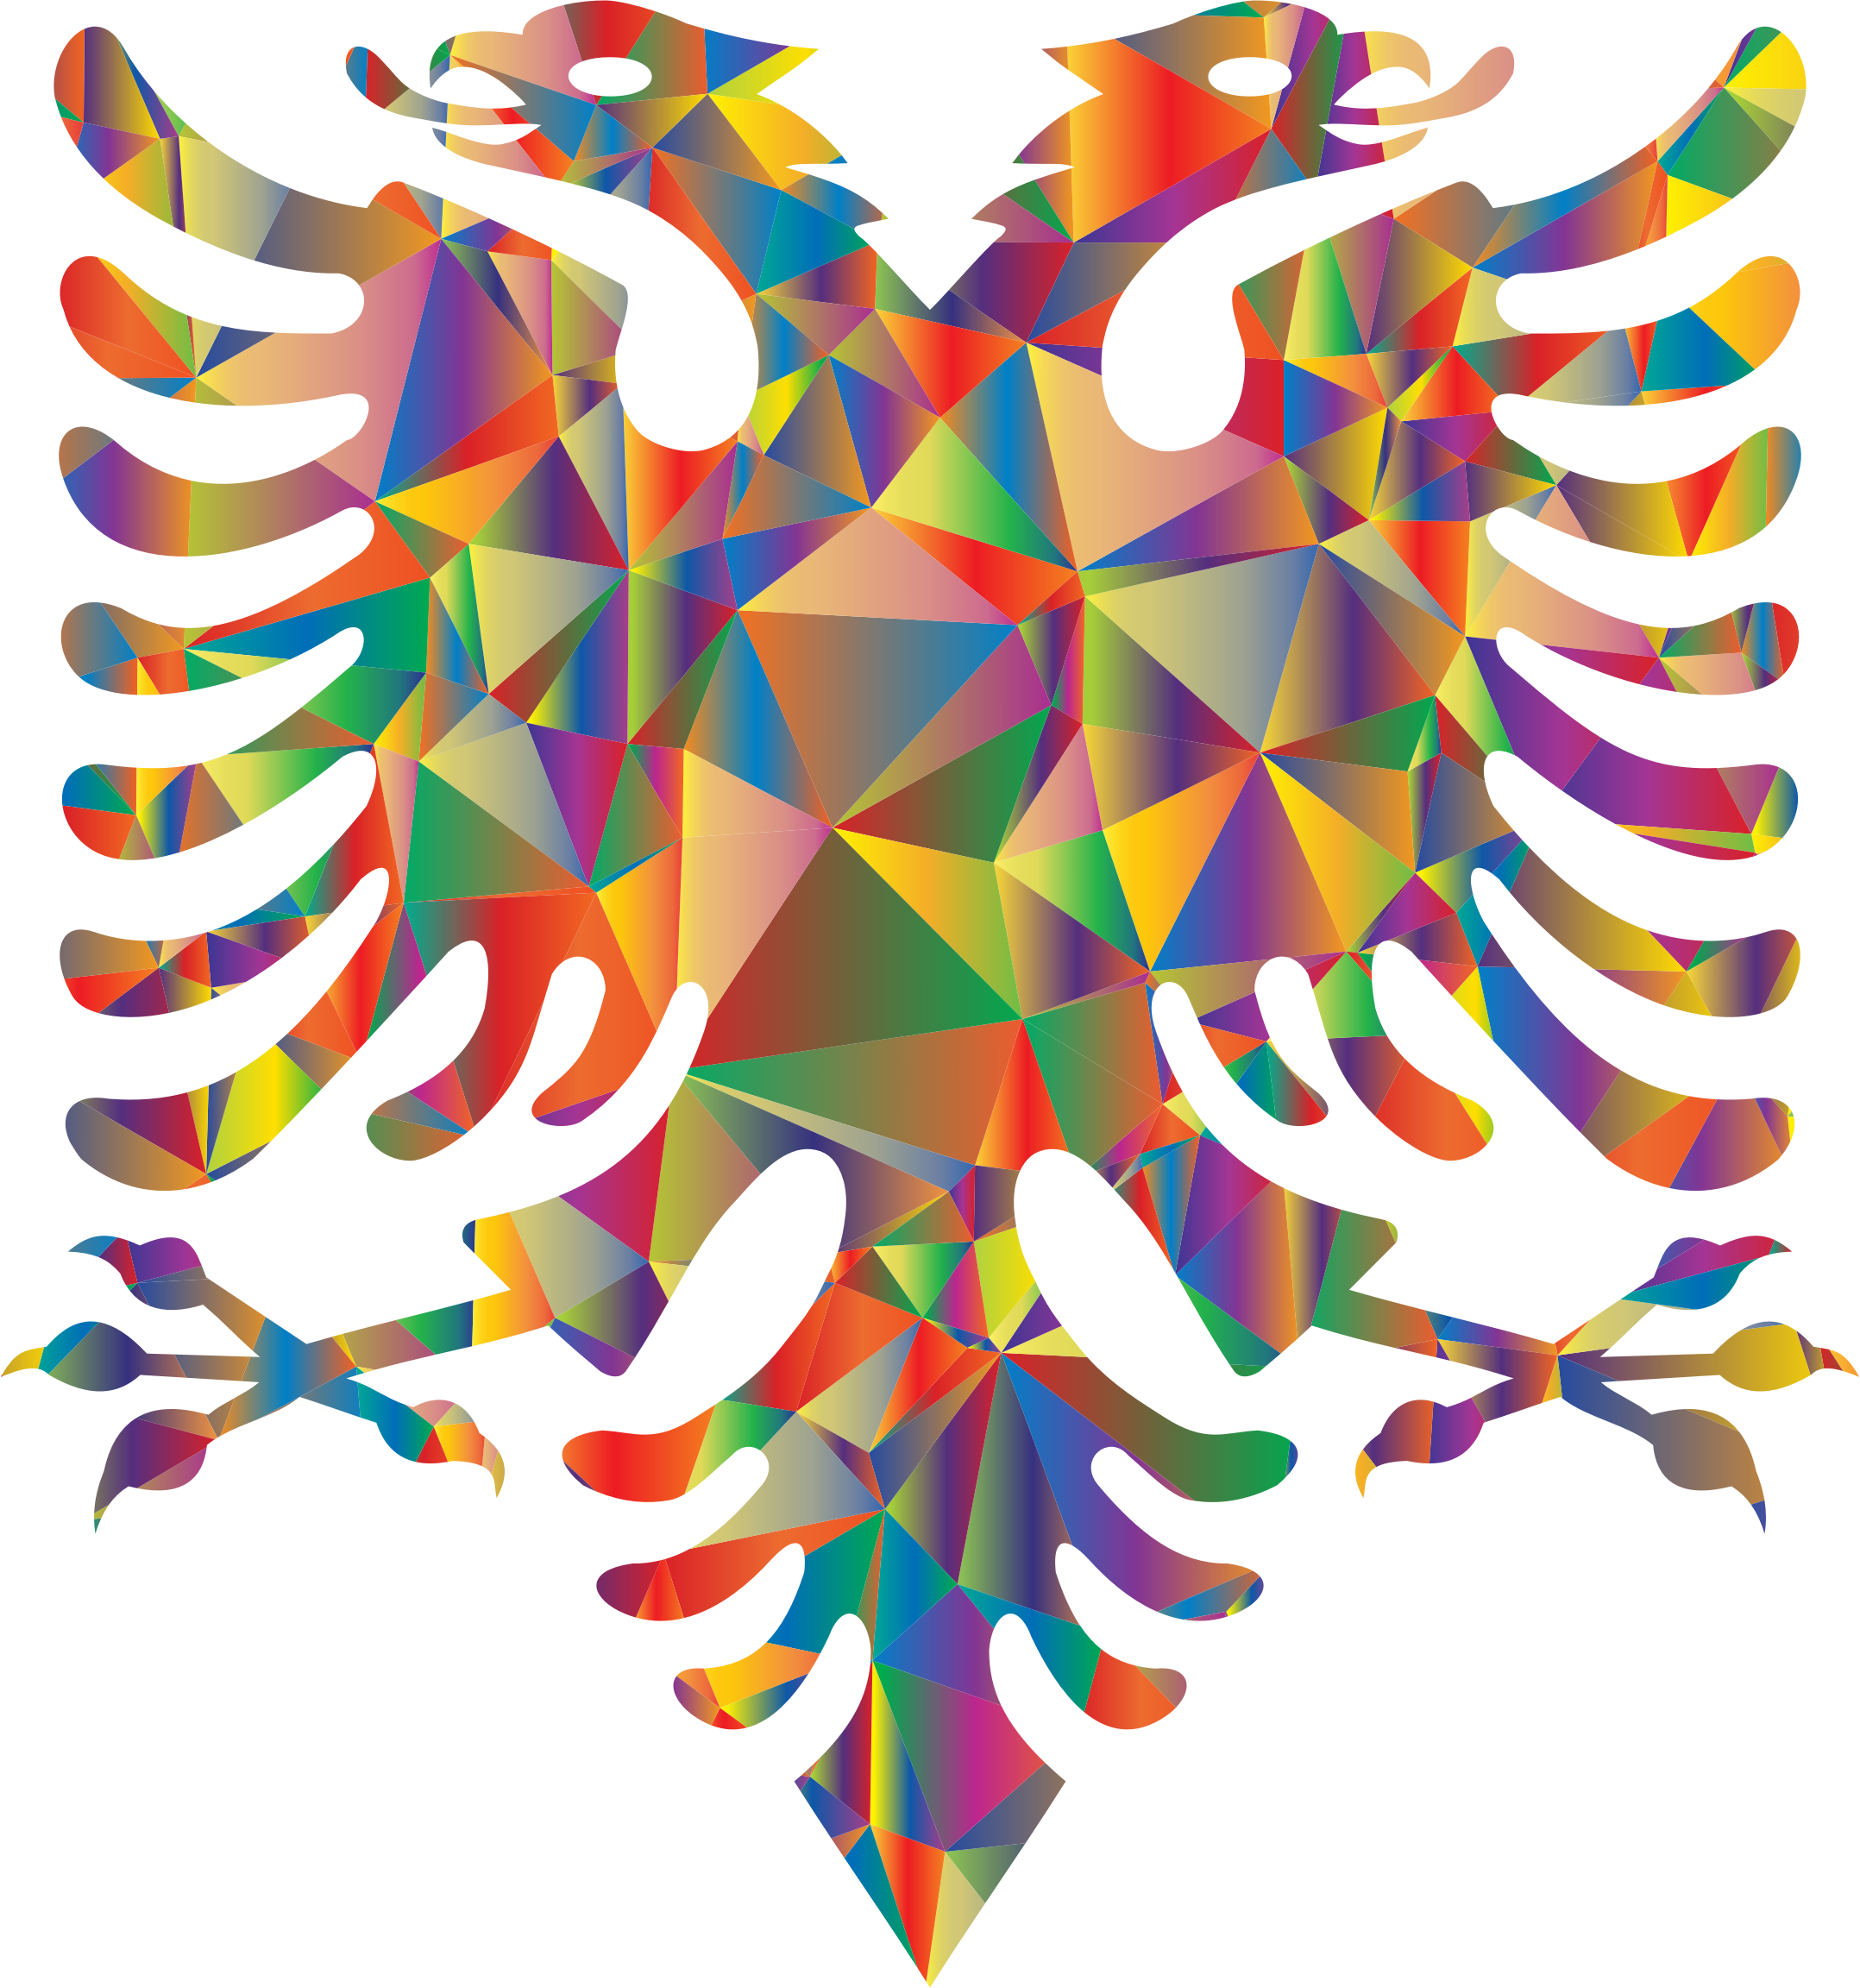 Polyprismatic Low Poly Double Headed Eagle by GDJ